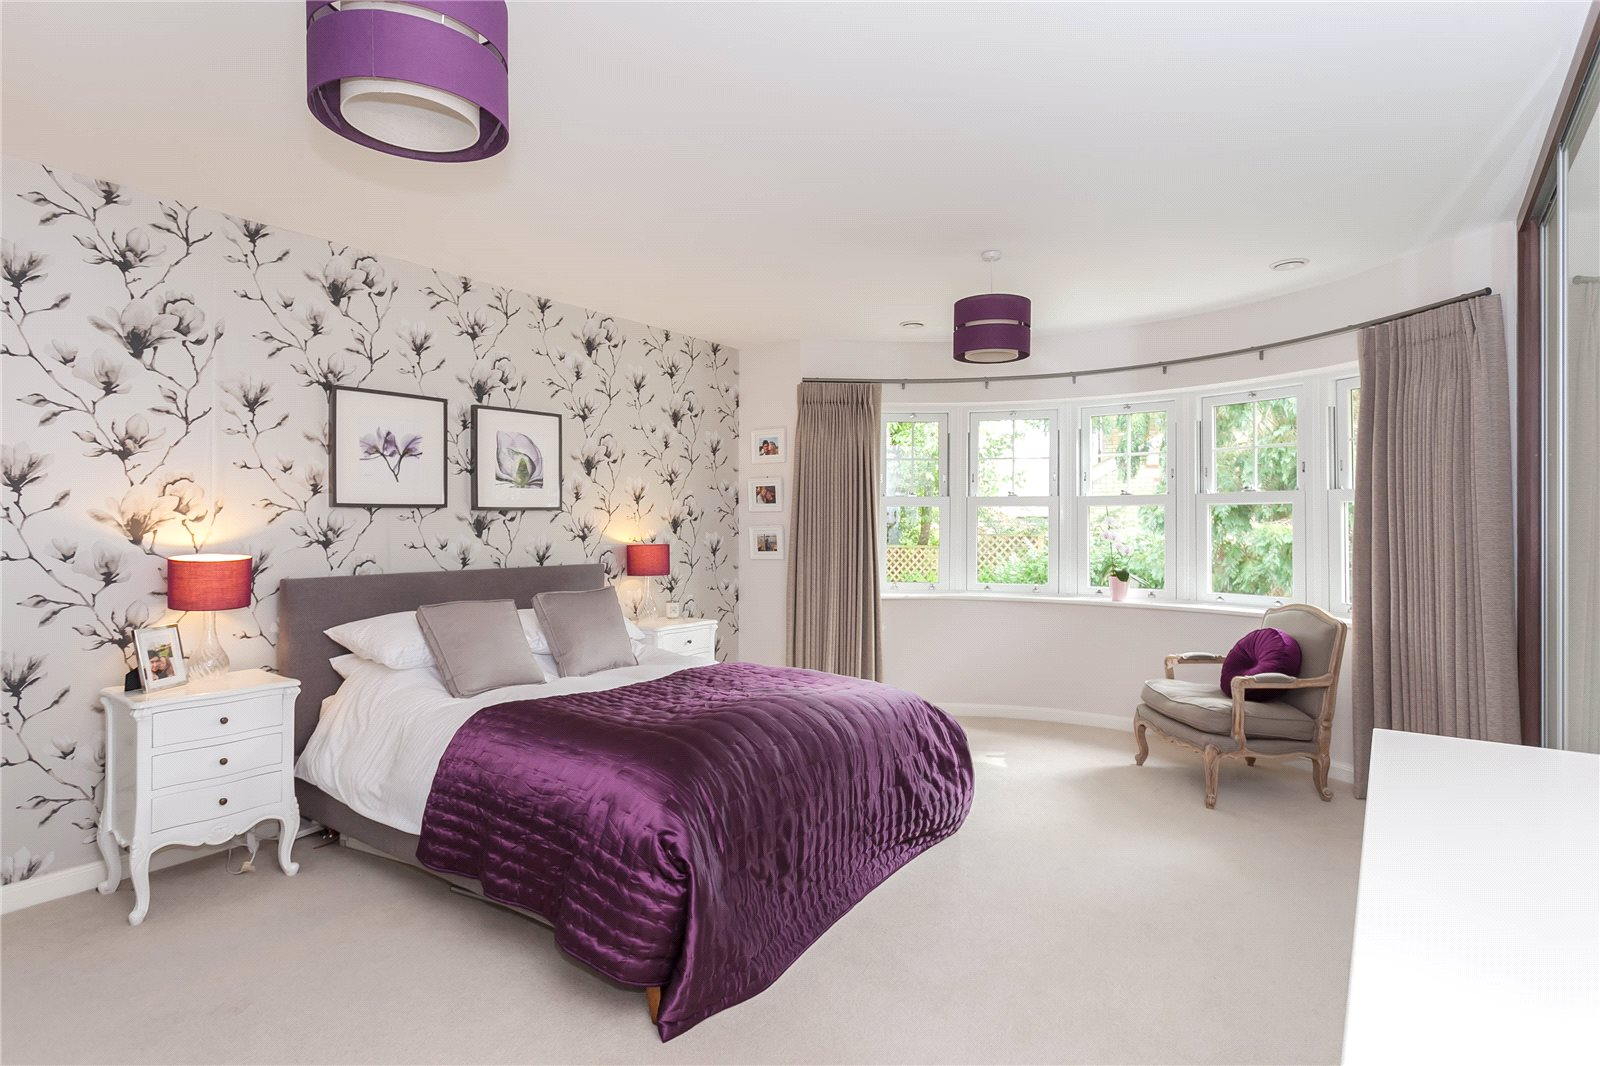 Additional photo for property listing at Baytrees, 20 South Park View, Gerrards Cross, Buckinghamshire, SL9 Gerrards Cross, Ingiltere